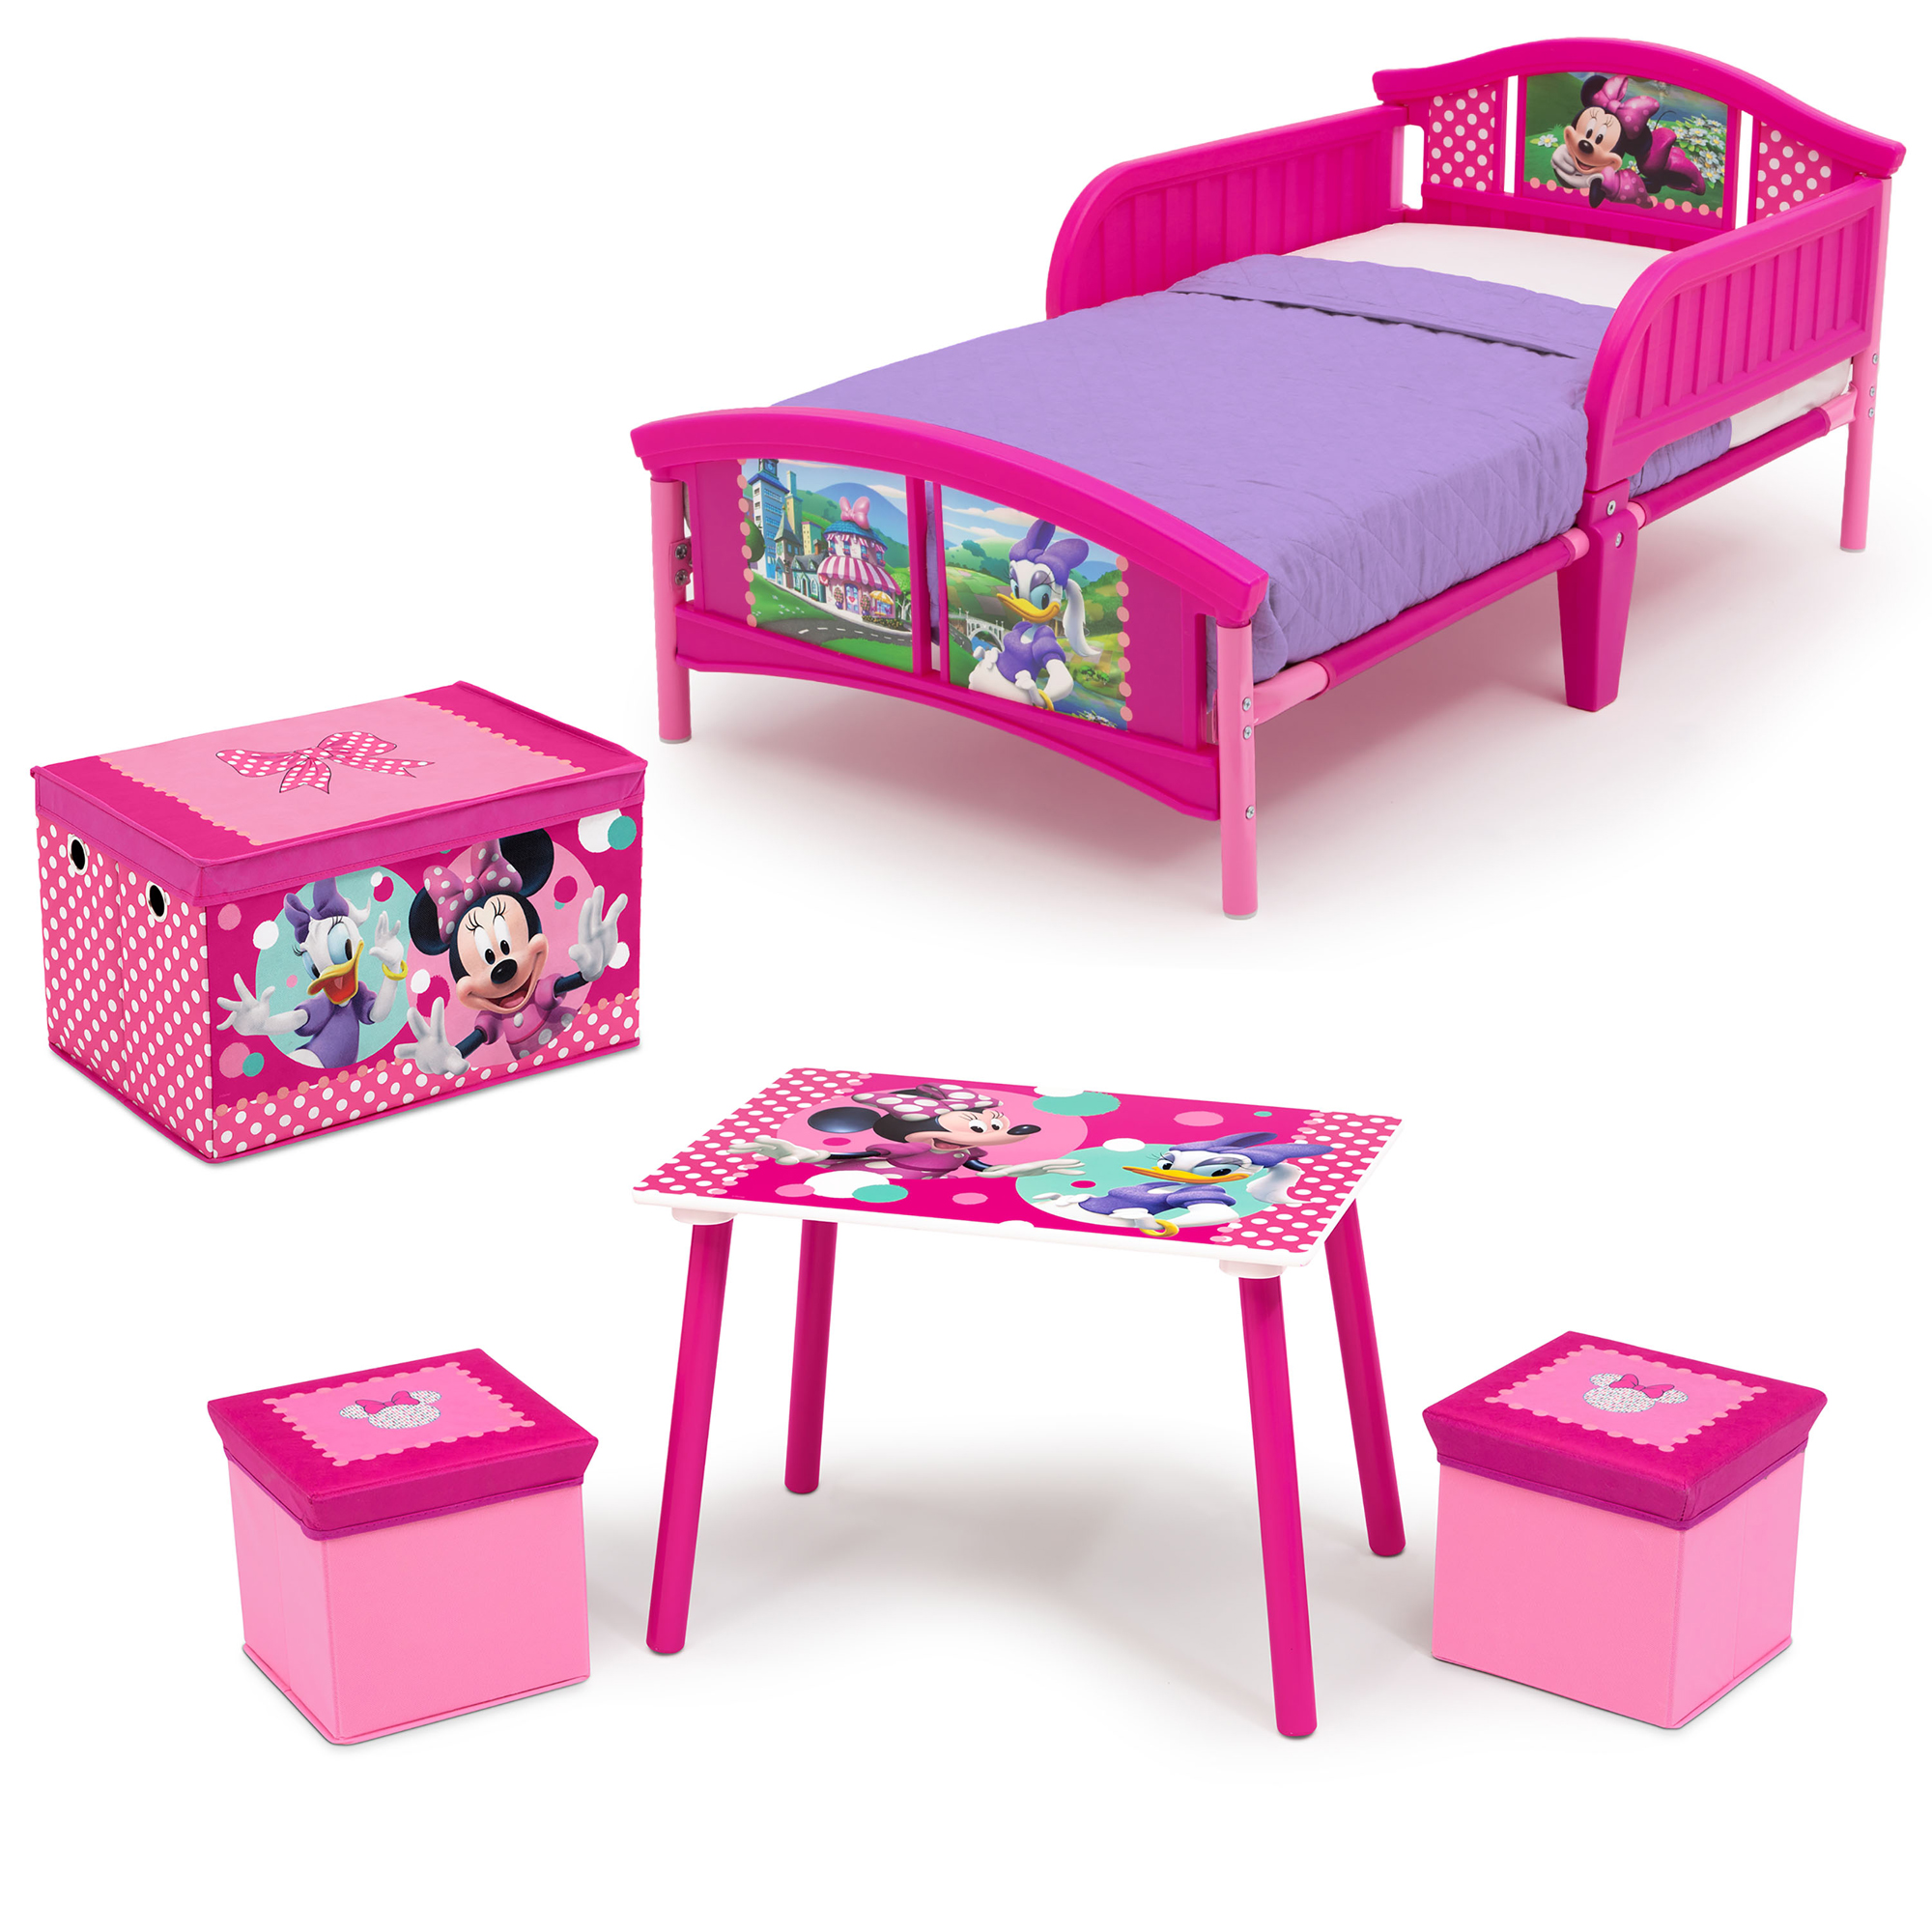 Disney Minnie Mouse 5-Piece Toddler Bed Bedroom Set with BONUS Fabric Toy Box by Delta Children